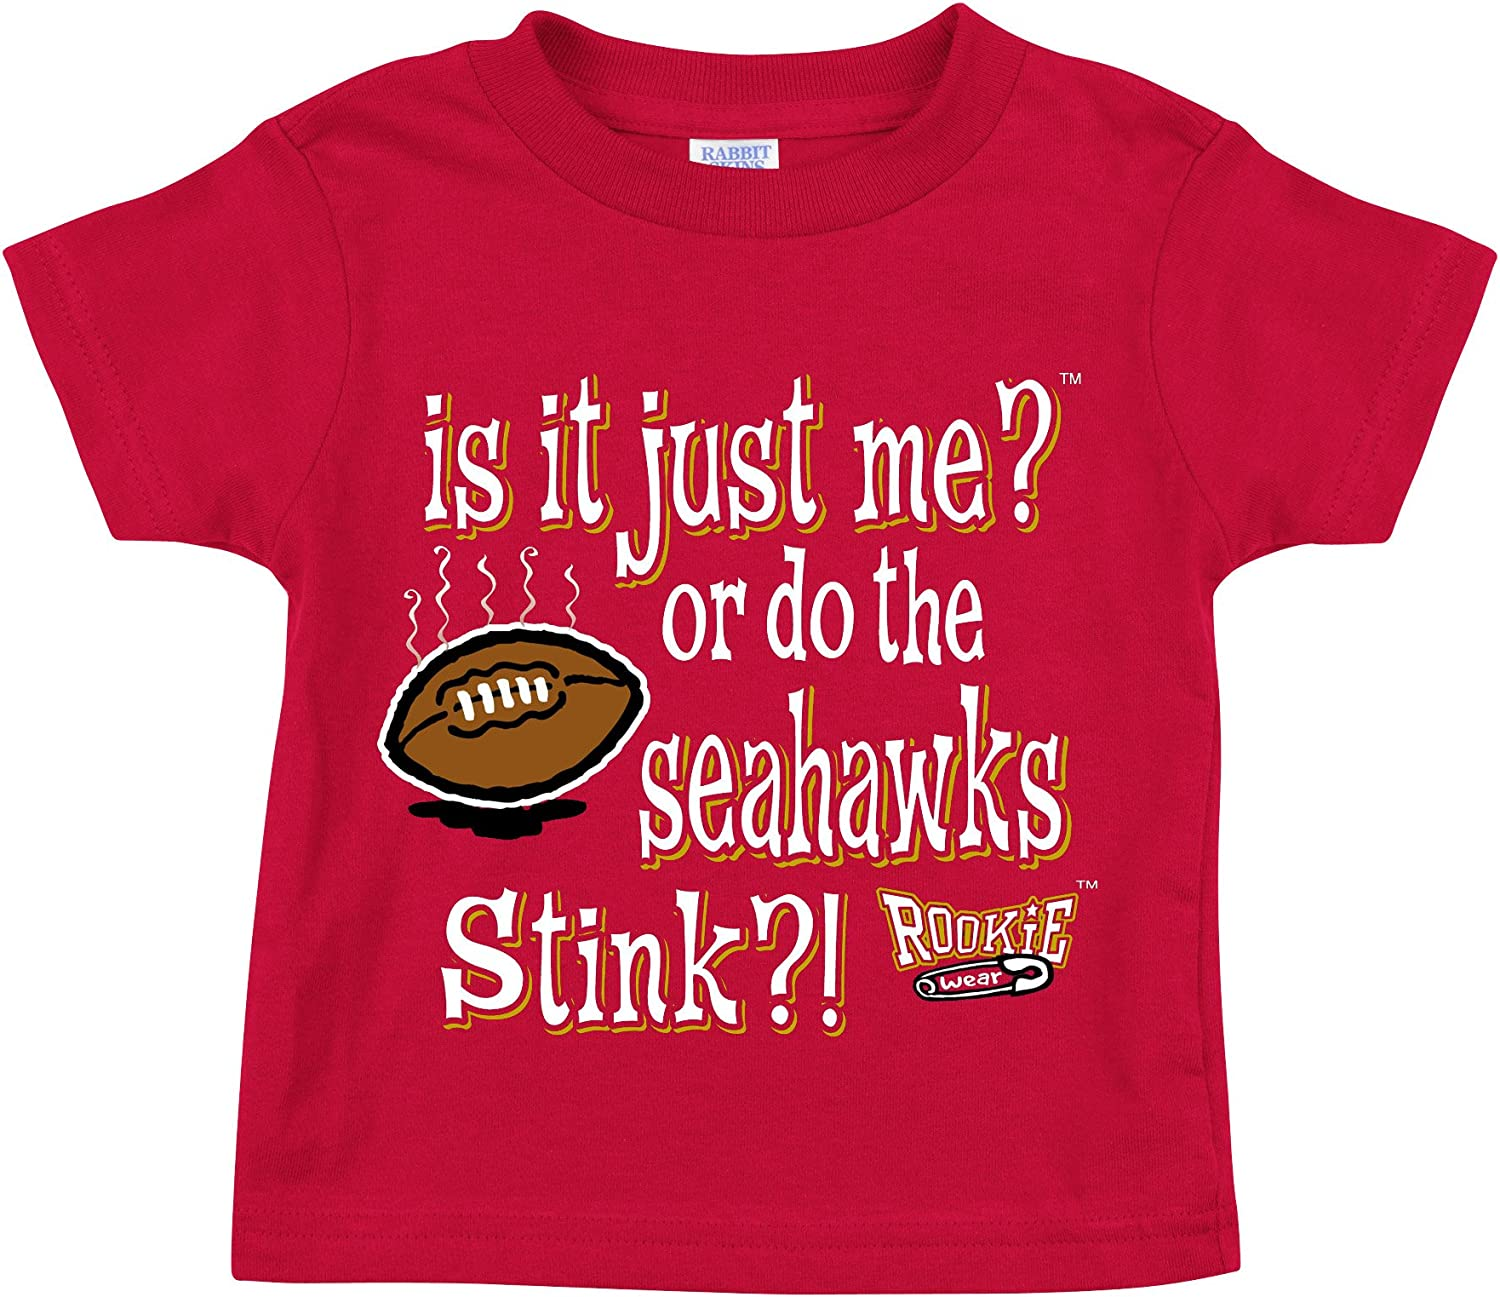 2T-4T is It Just Me? Onesie Smack Apparel San Francisco Football Fans NB-18M or Toddler Tee